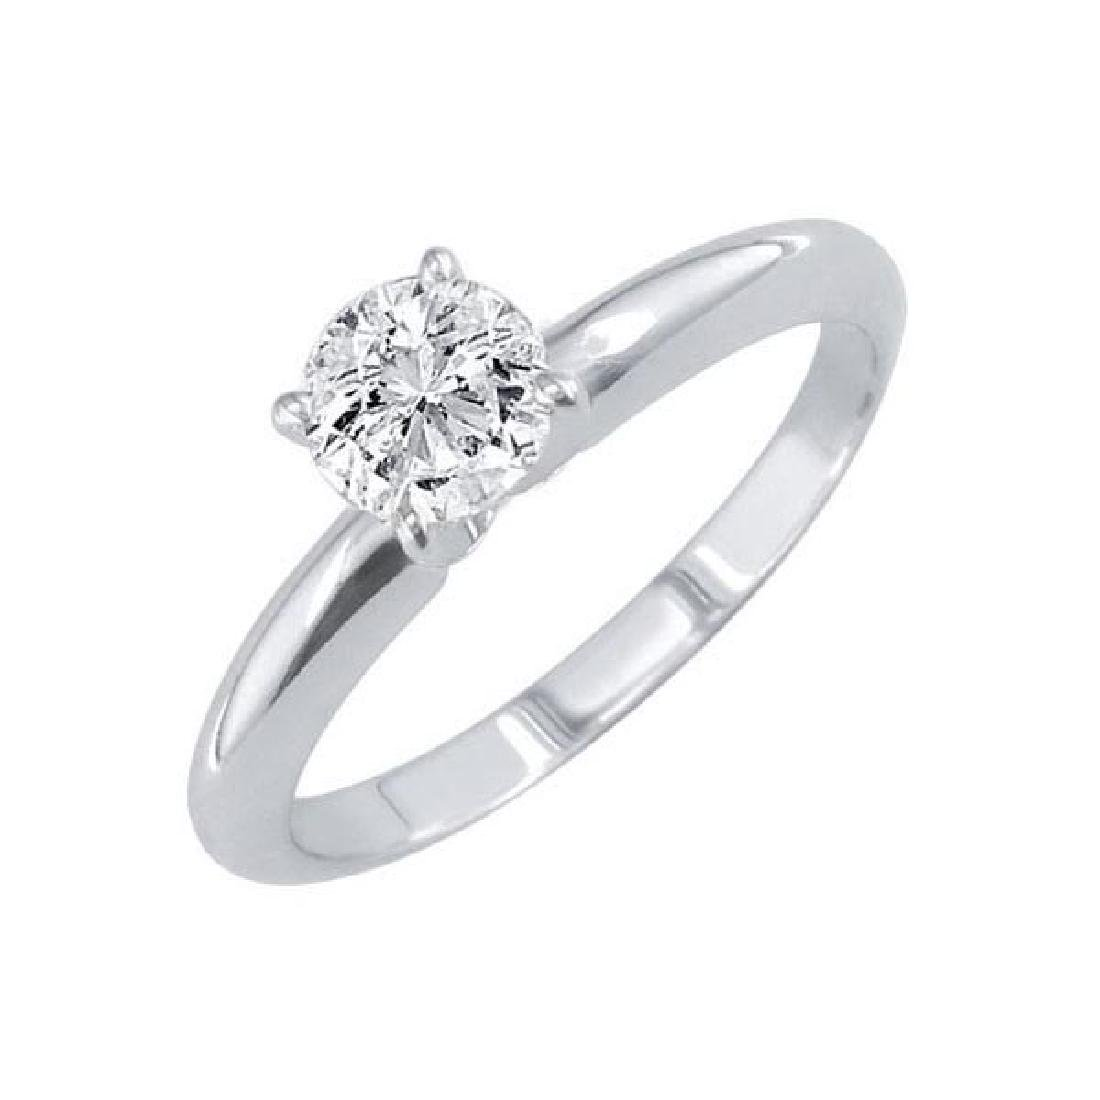 Certified 1.23 CTW Round Diamond Solitaire 14k Ring J/S